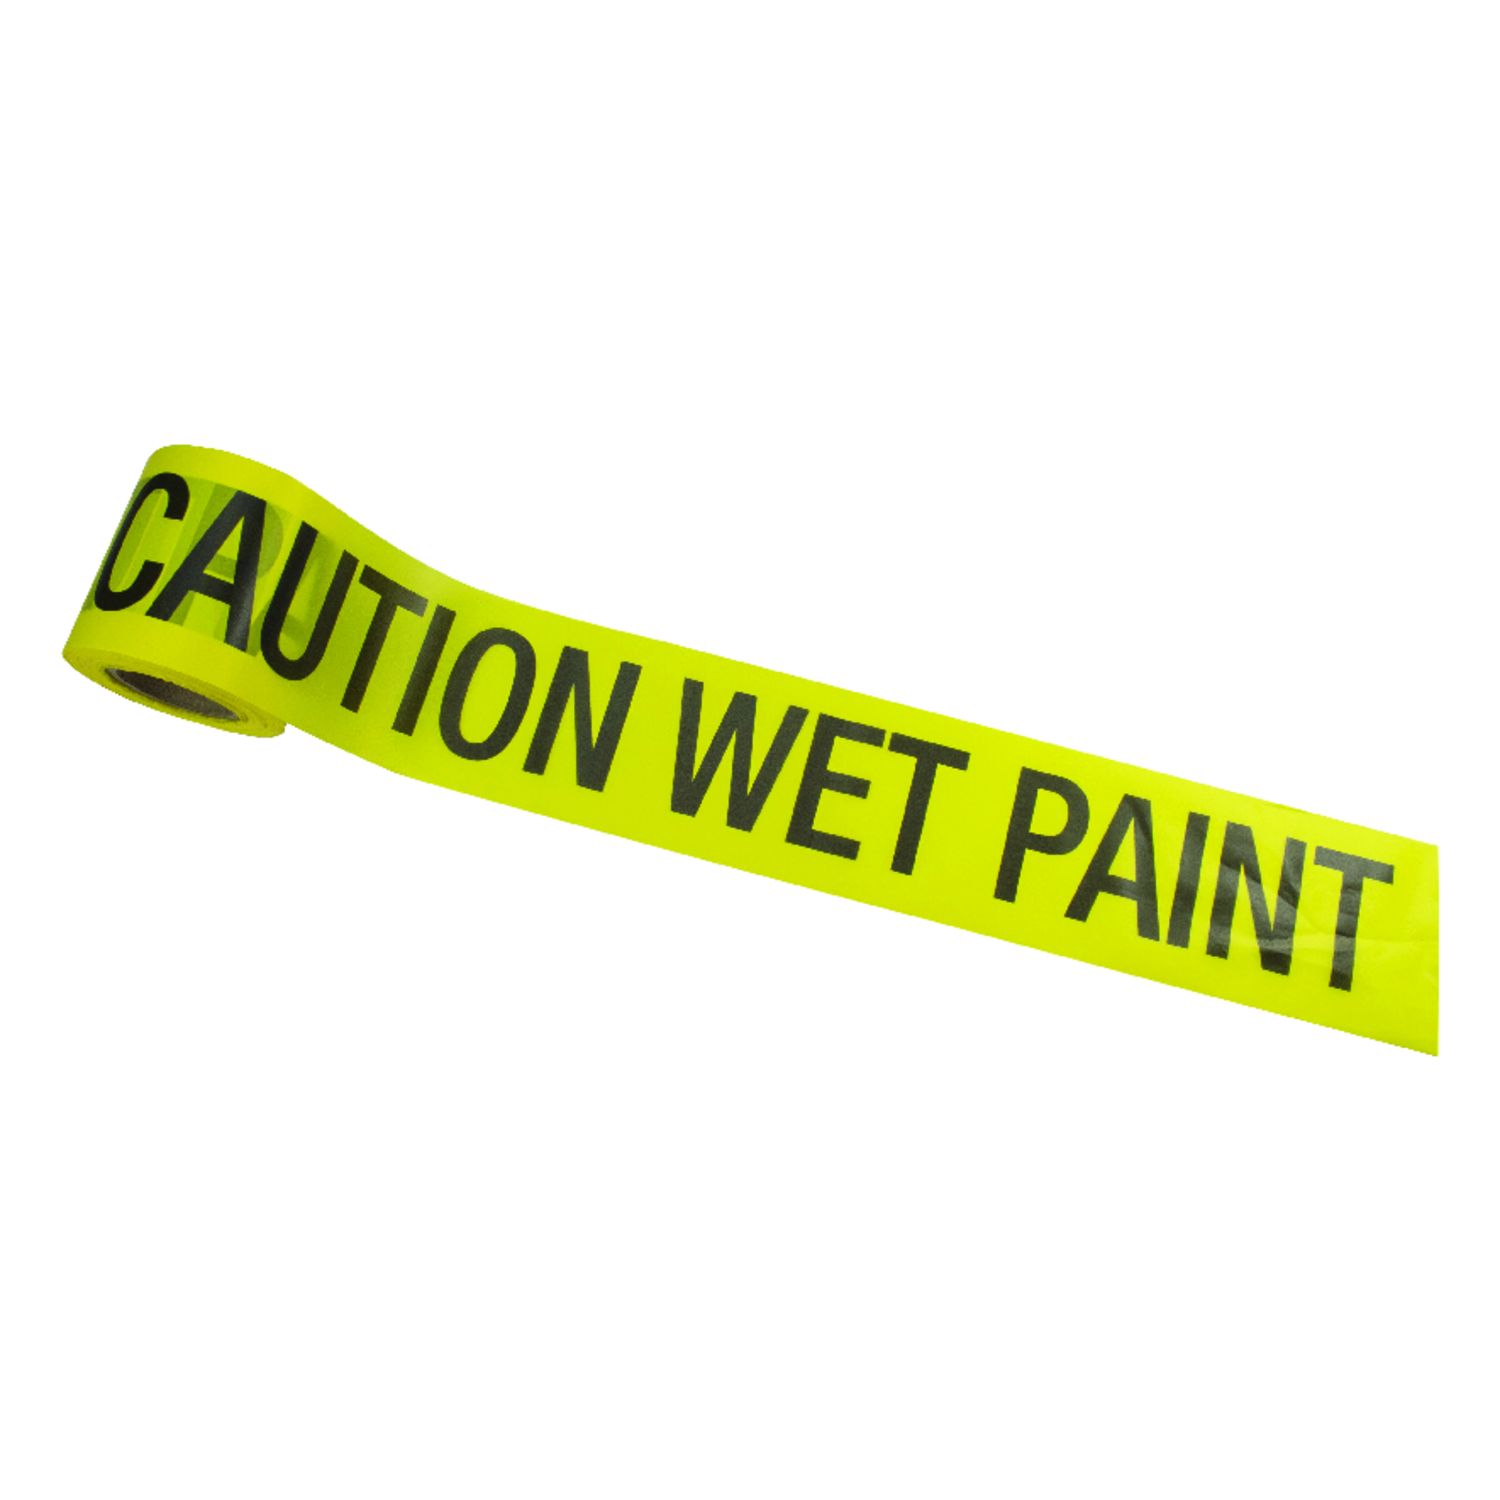 C.H. Hanson  3 in. W x 3 in. W x 200 ft. L Caution Wet Paint  Barricade Tape  Yellow  Plastic